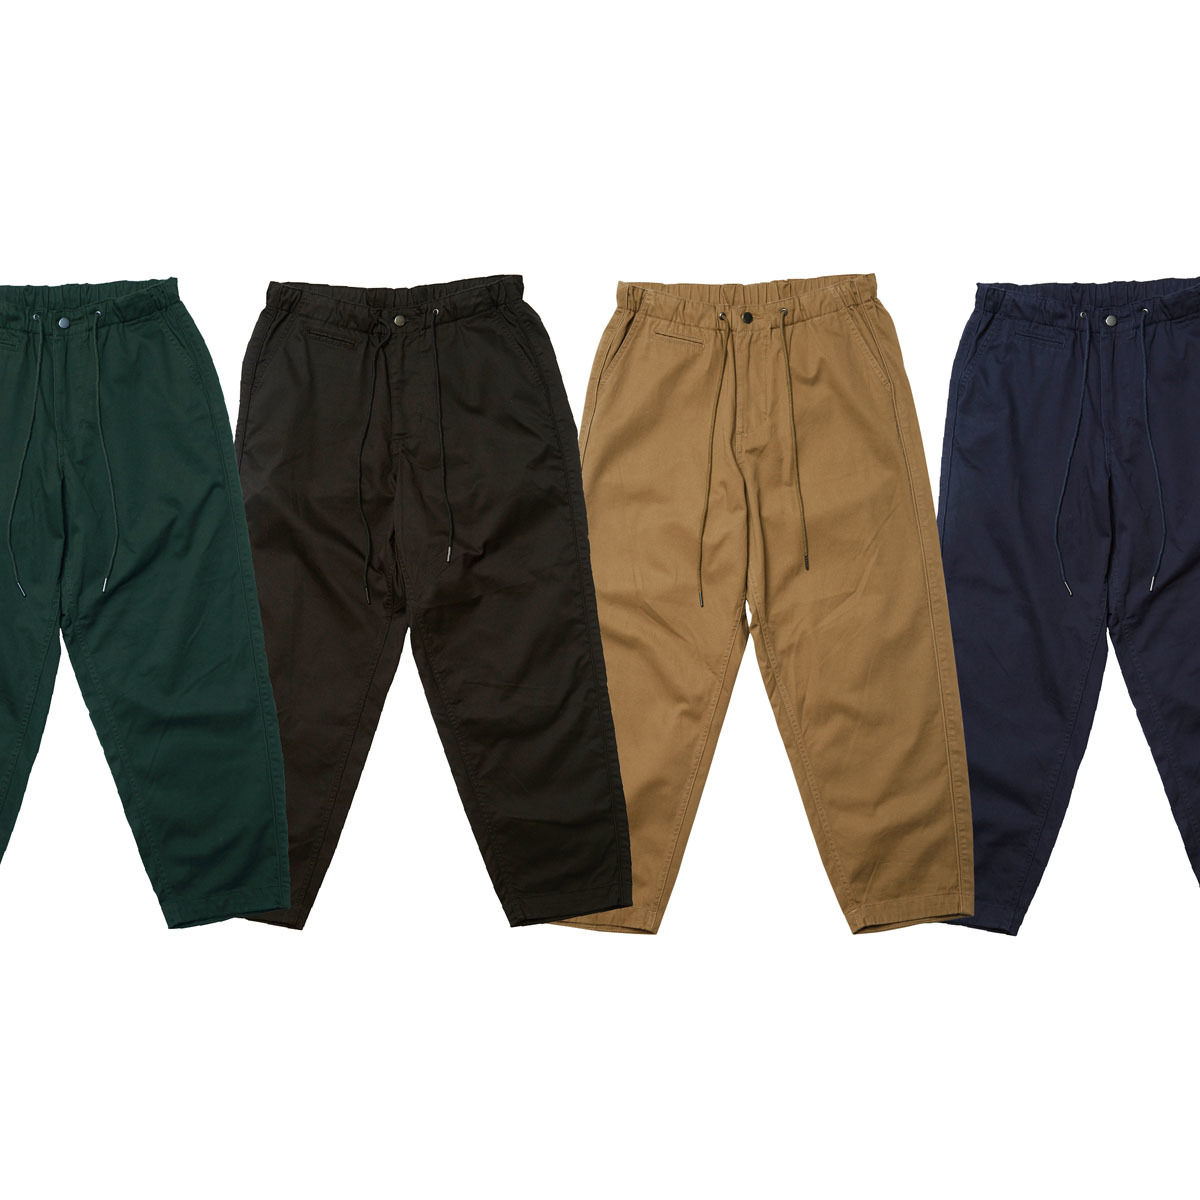 【Evisen Skateboards ゑ】EASY AS PIE PANTS